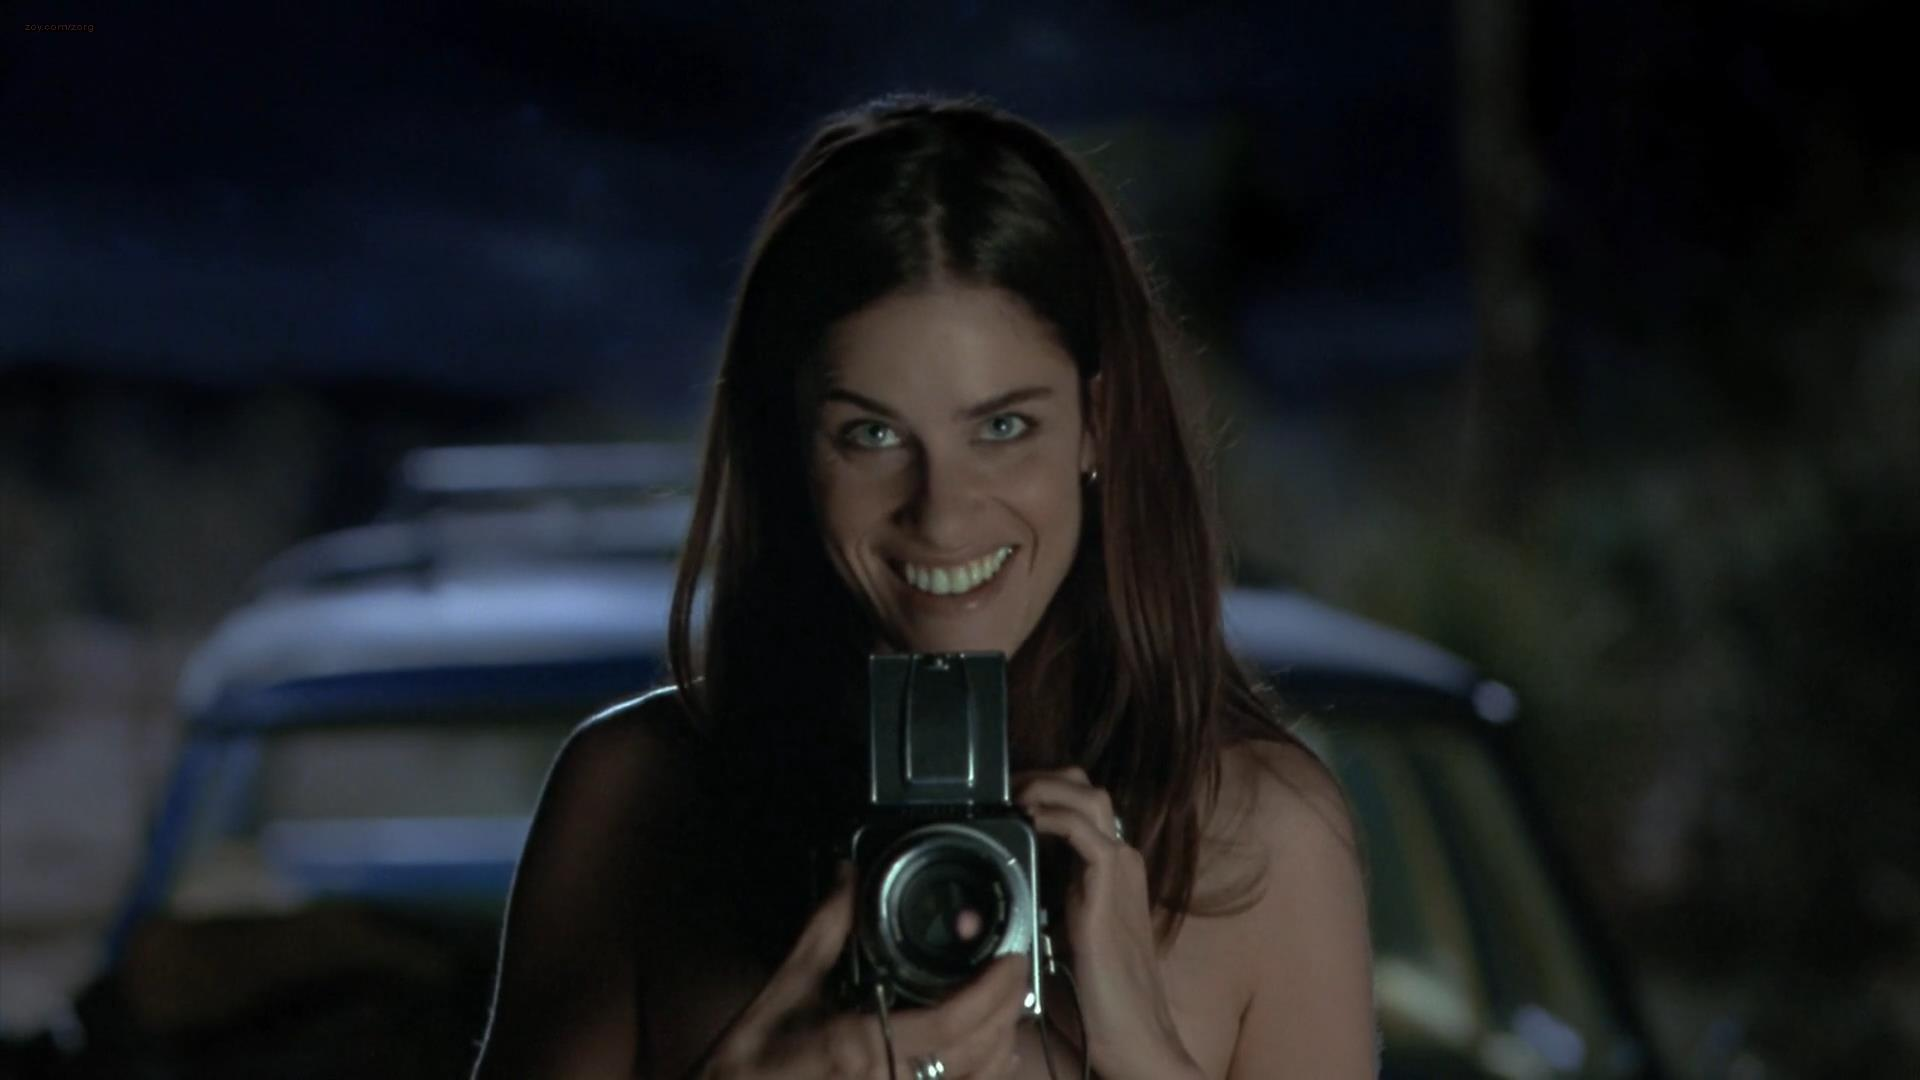 Amanda peet nude in whole nine yards 1